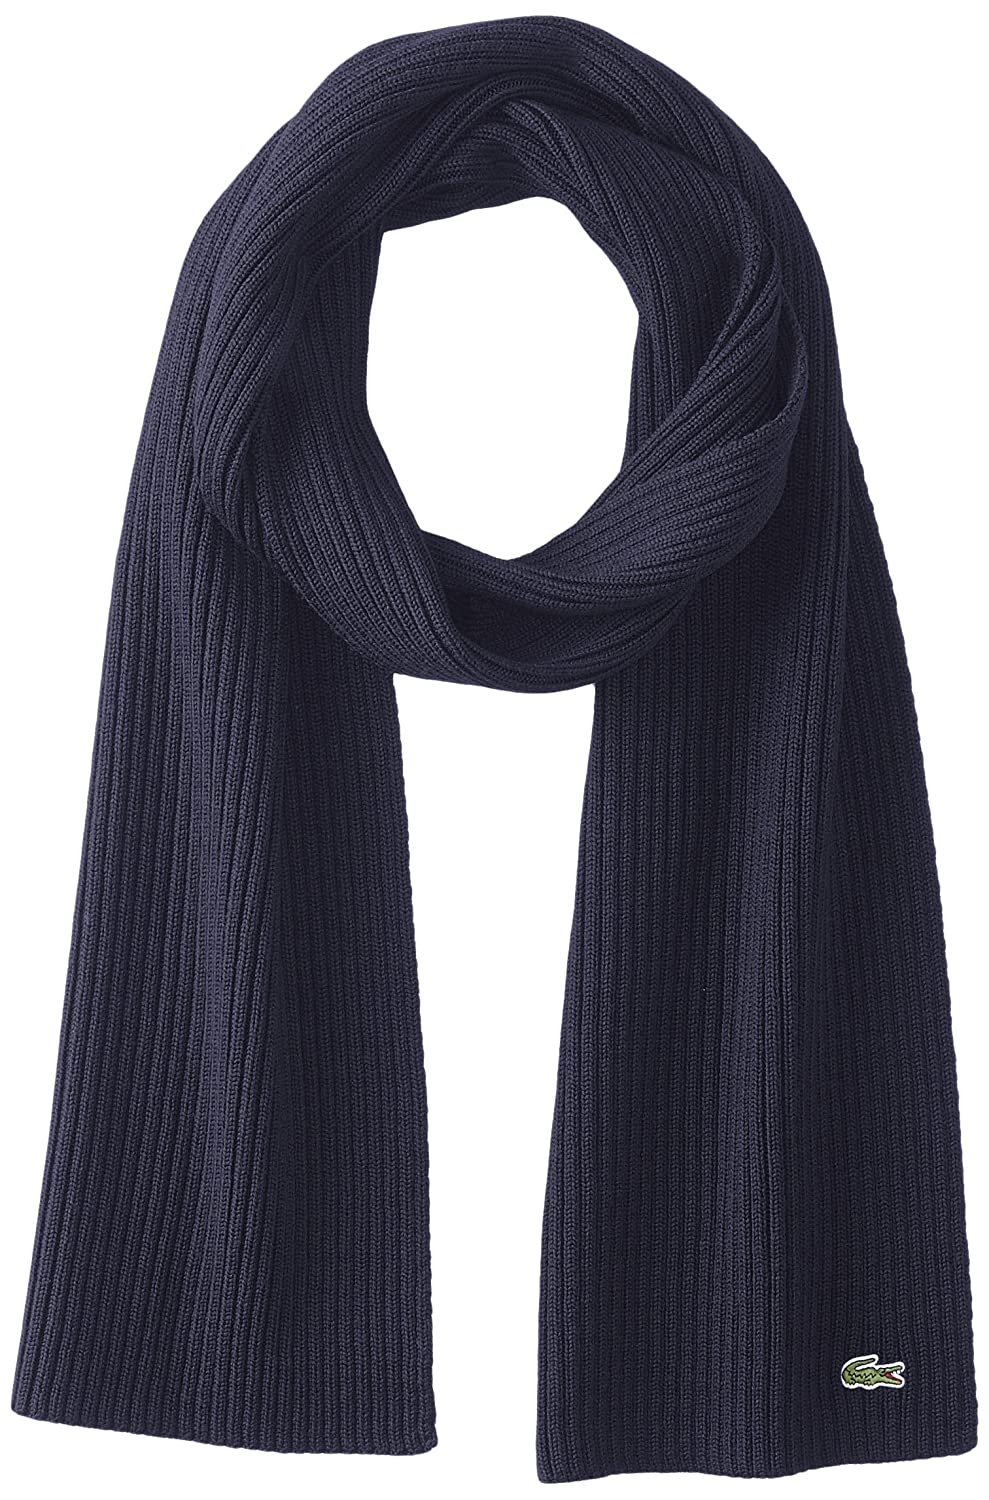 Lacoste Men's Classic Wool Ribbed Scarf Navy Blue One Size Lacoste Mens accessories RE4212-51